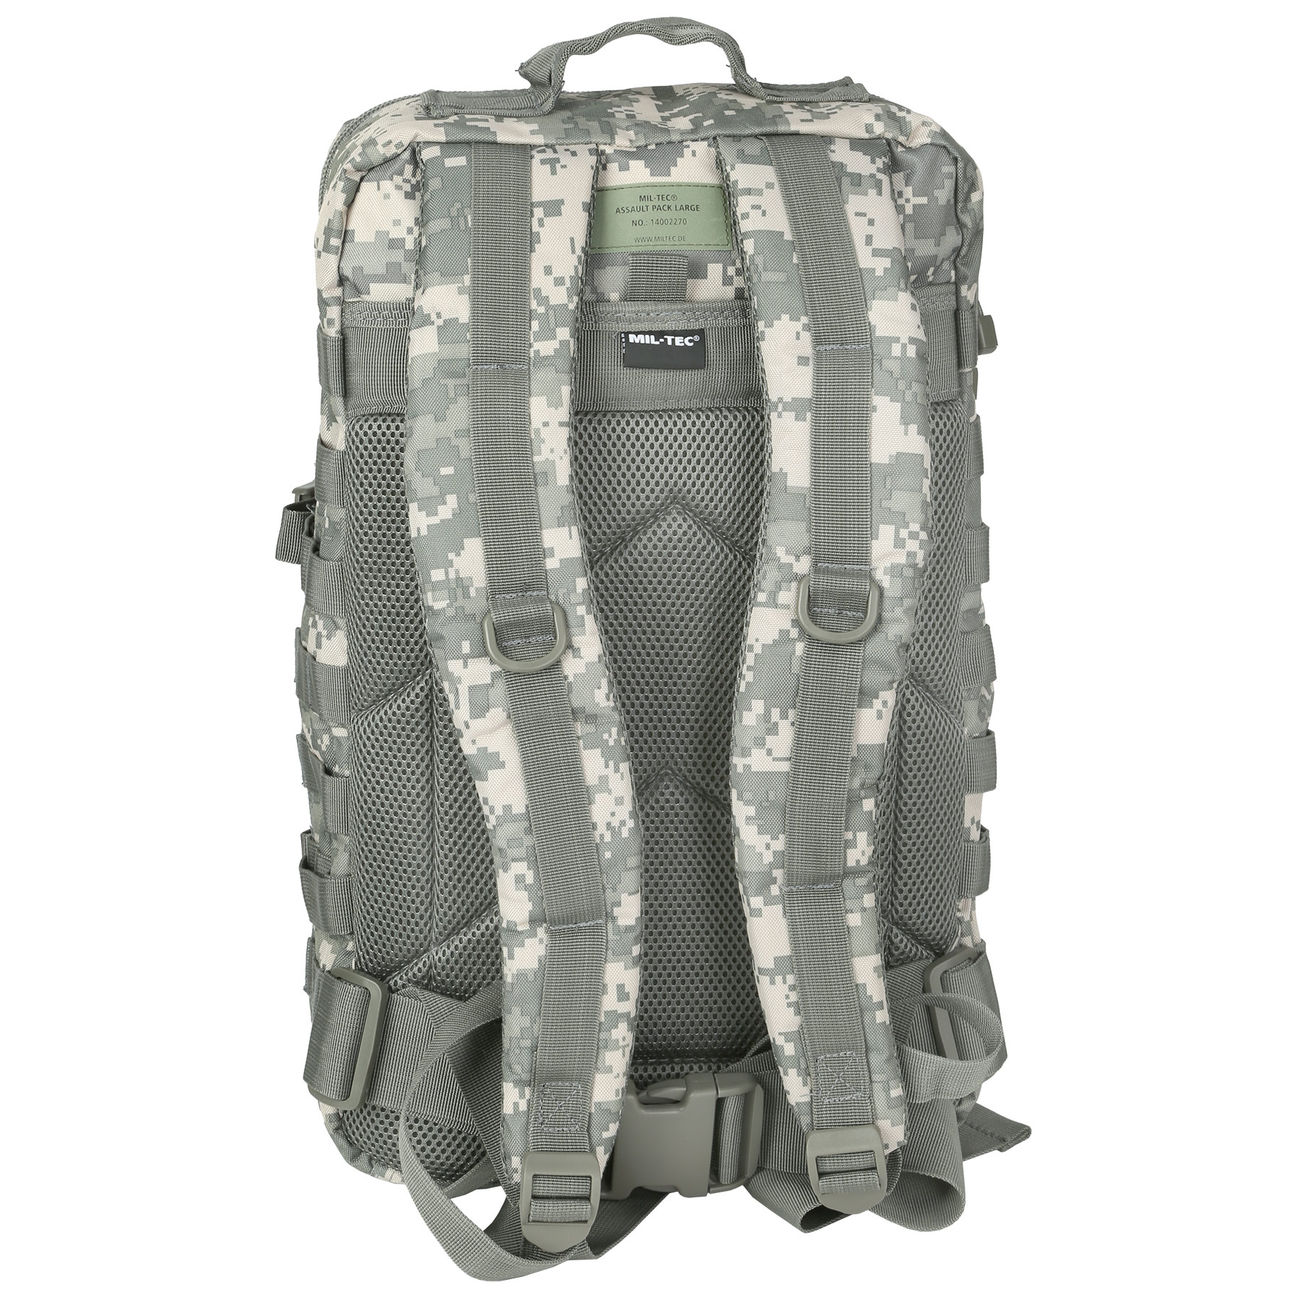 Mil-Tec Rucksack US Assault Pack II 40 Liter at-digital 7